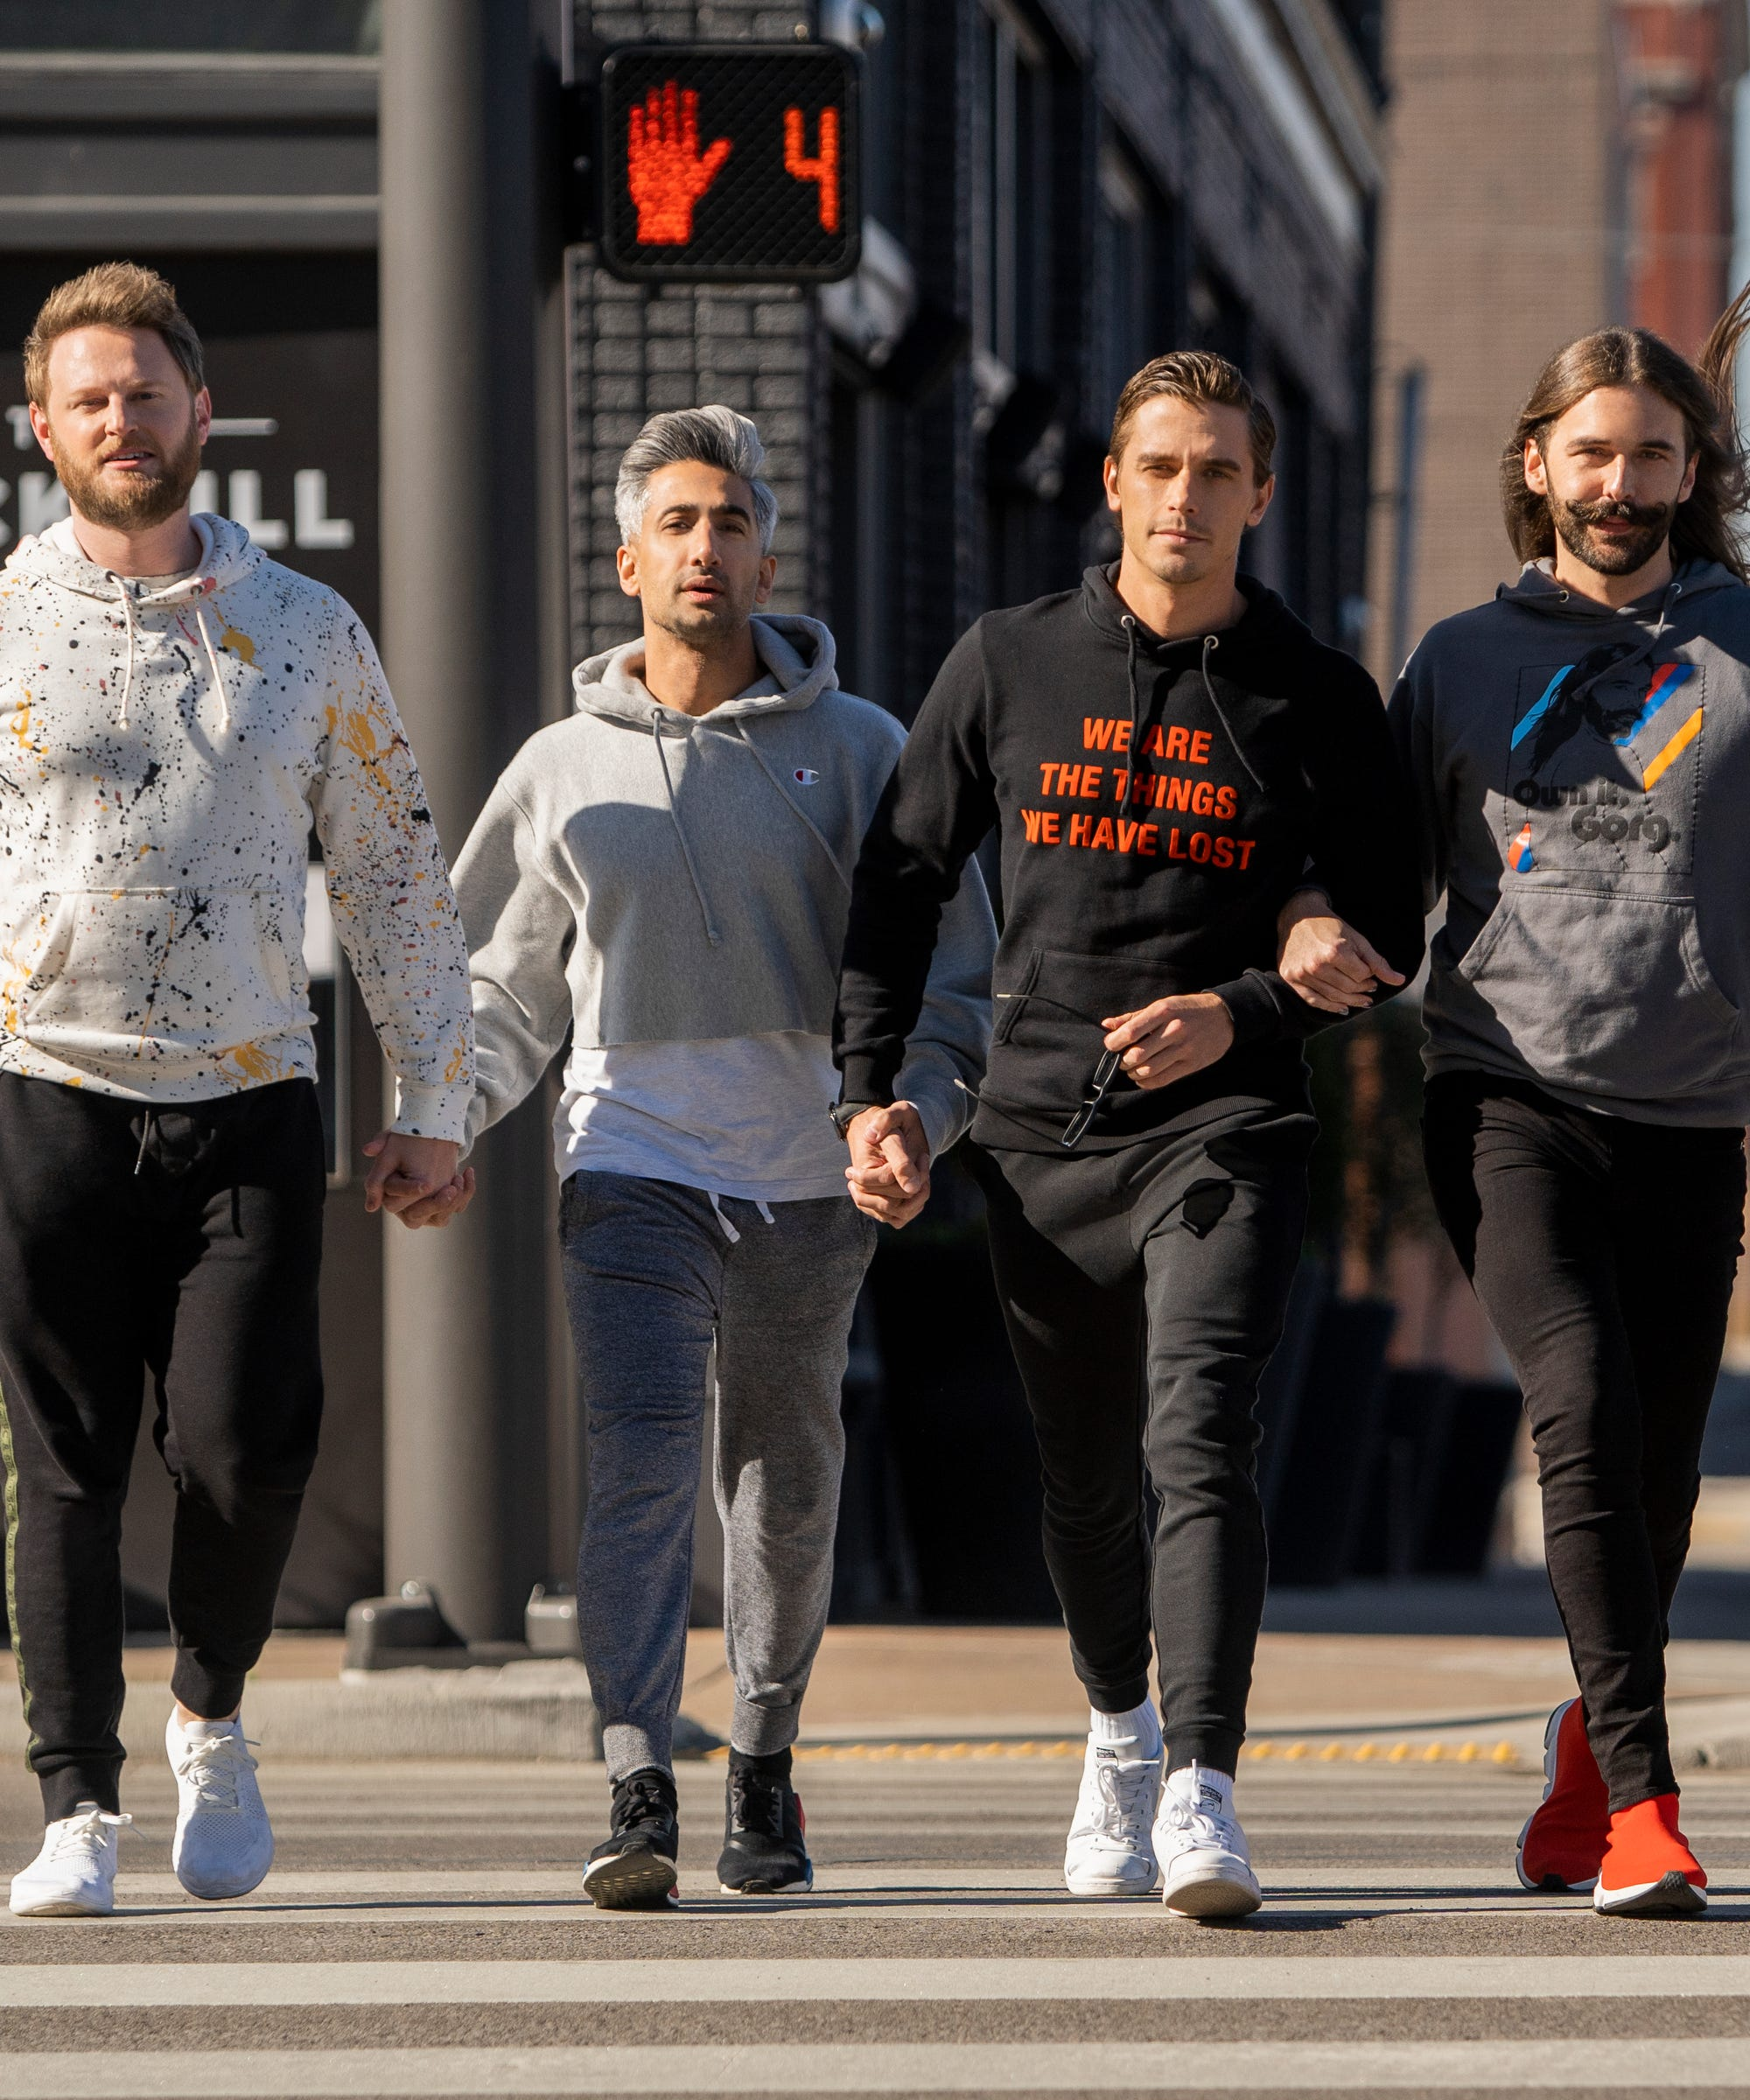 The Queer Eye Season 4 Trailer Is Here & It Looks, Dare I Say, Like The Best Yet